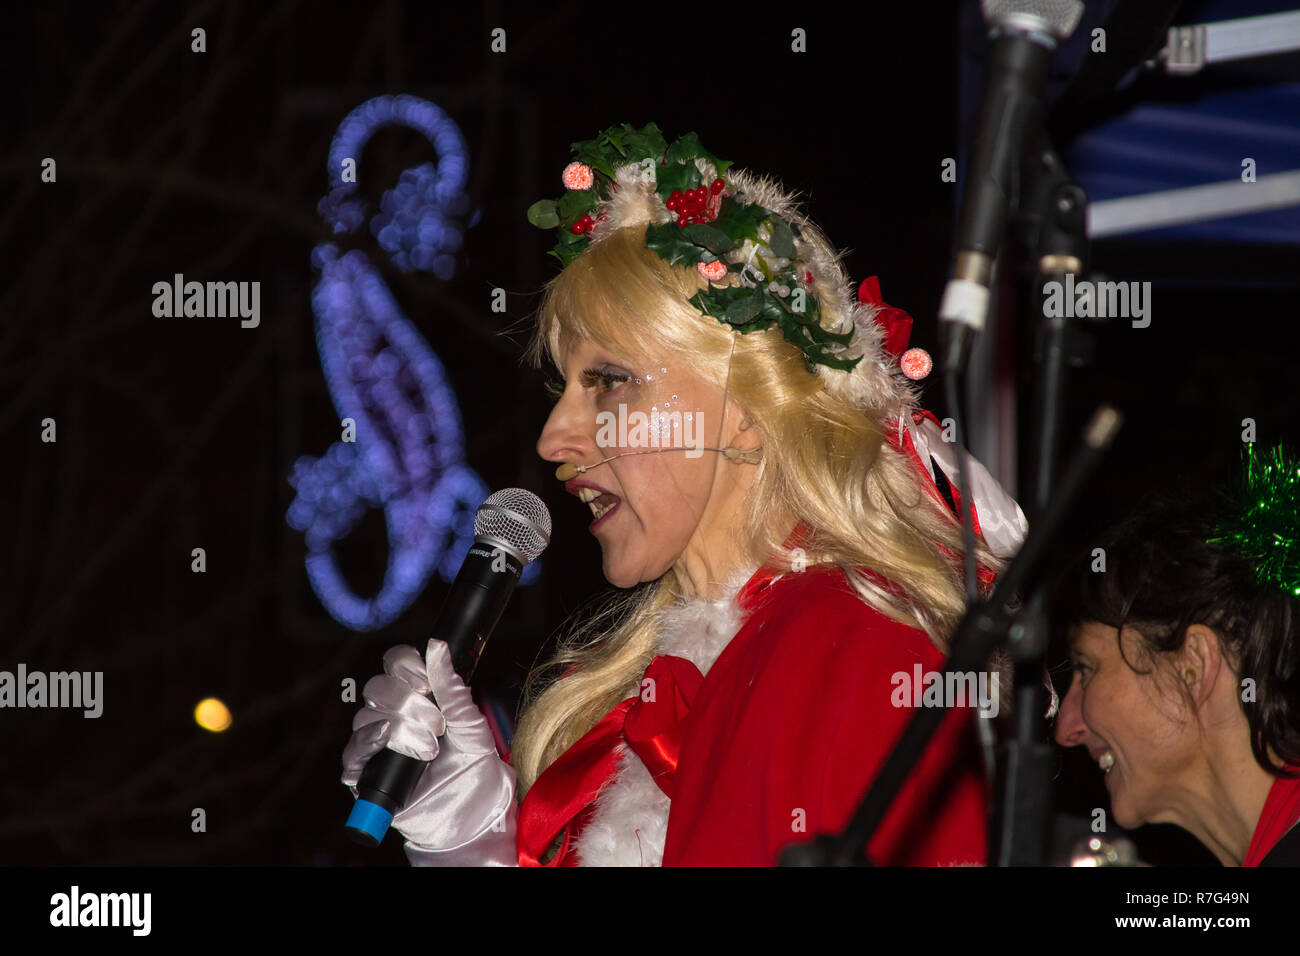 Melody Burke performing at East Dulwich Christmas cracker 1st December 2018 with a presenter looking on - Stock Image